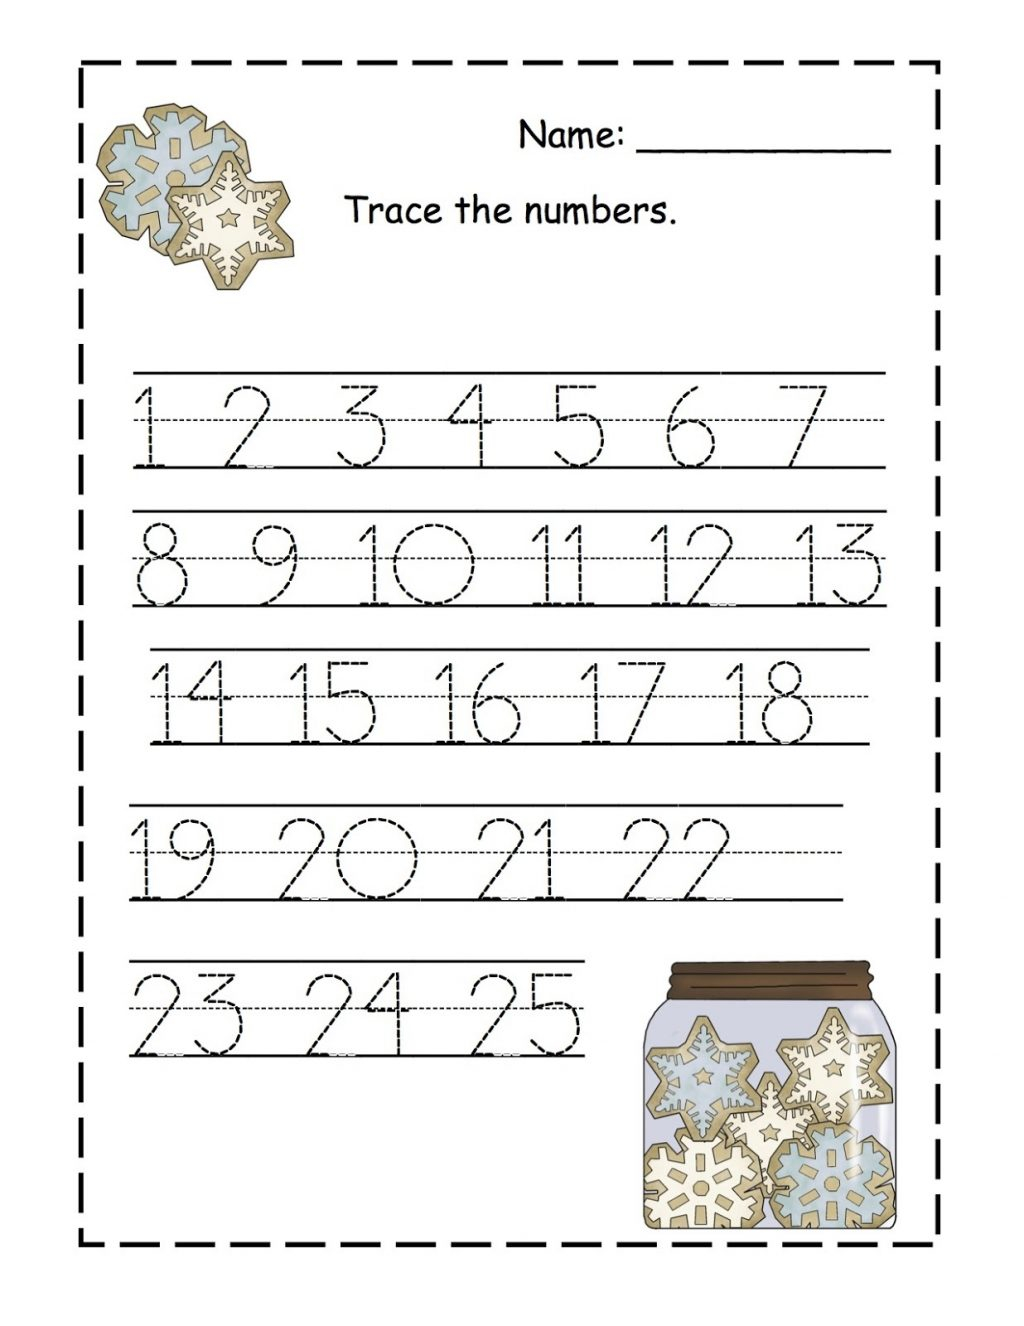 Worksheet ~ Tracing Names Worksheet Generator For Adults